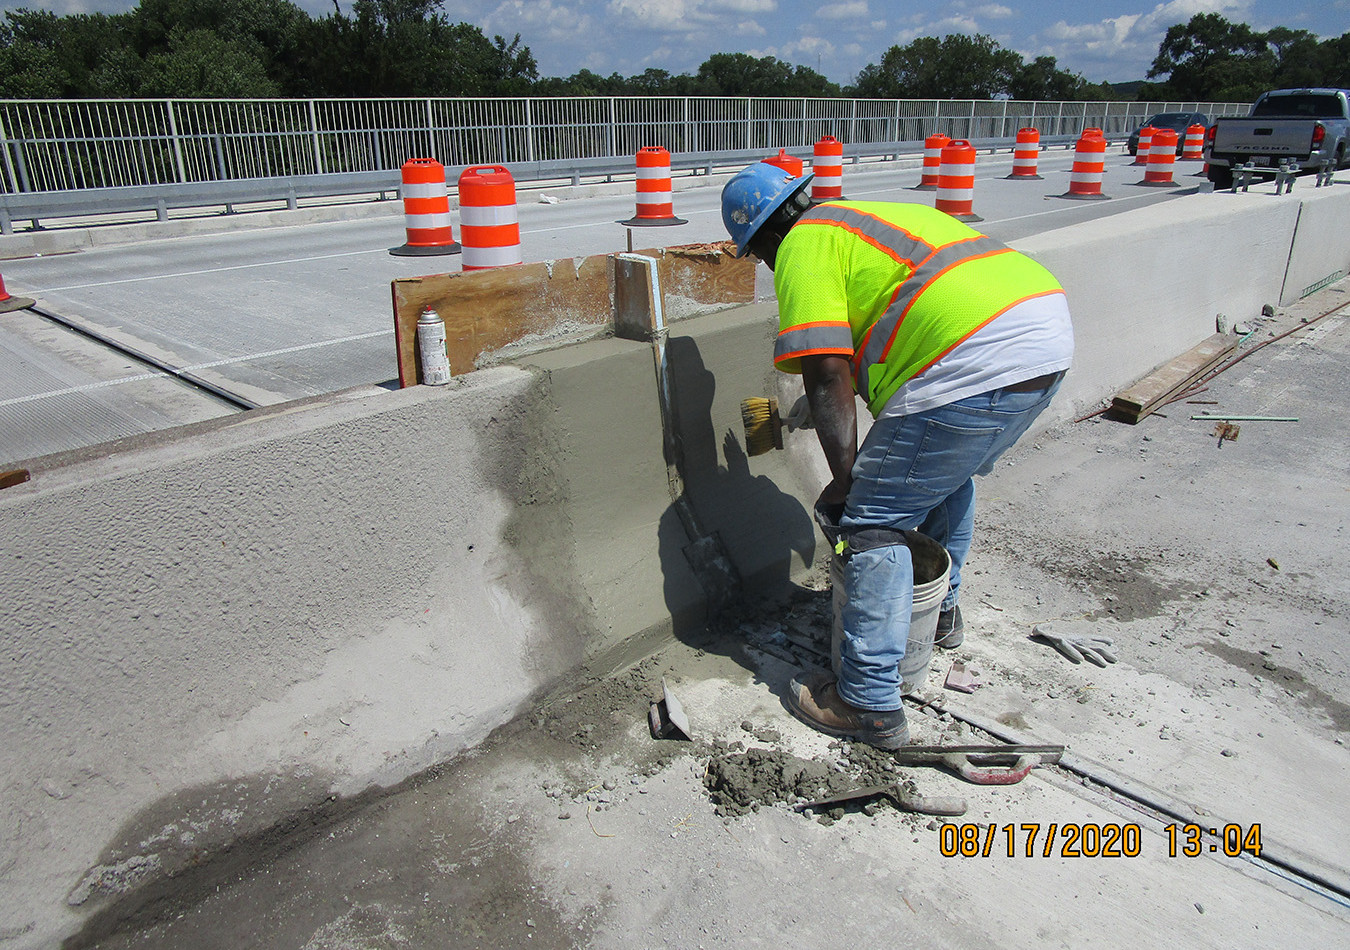 South Bridge Median Barrier Joint Reconstruction